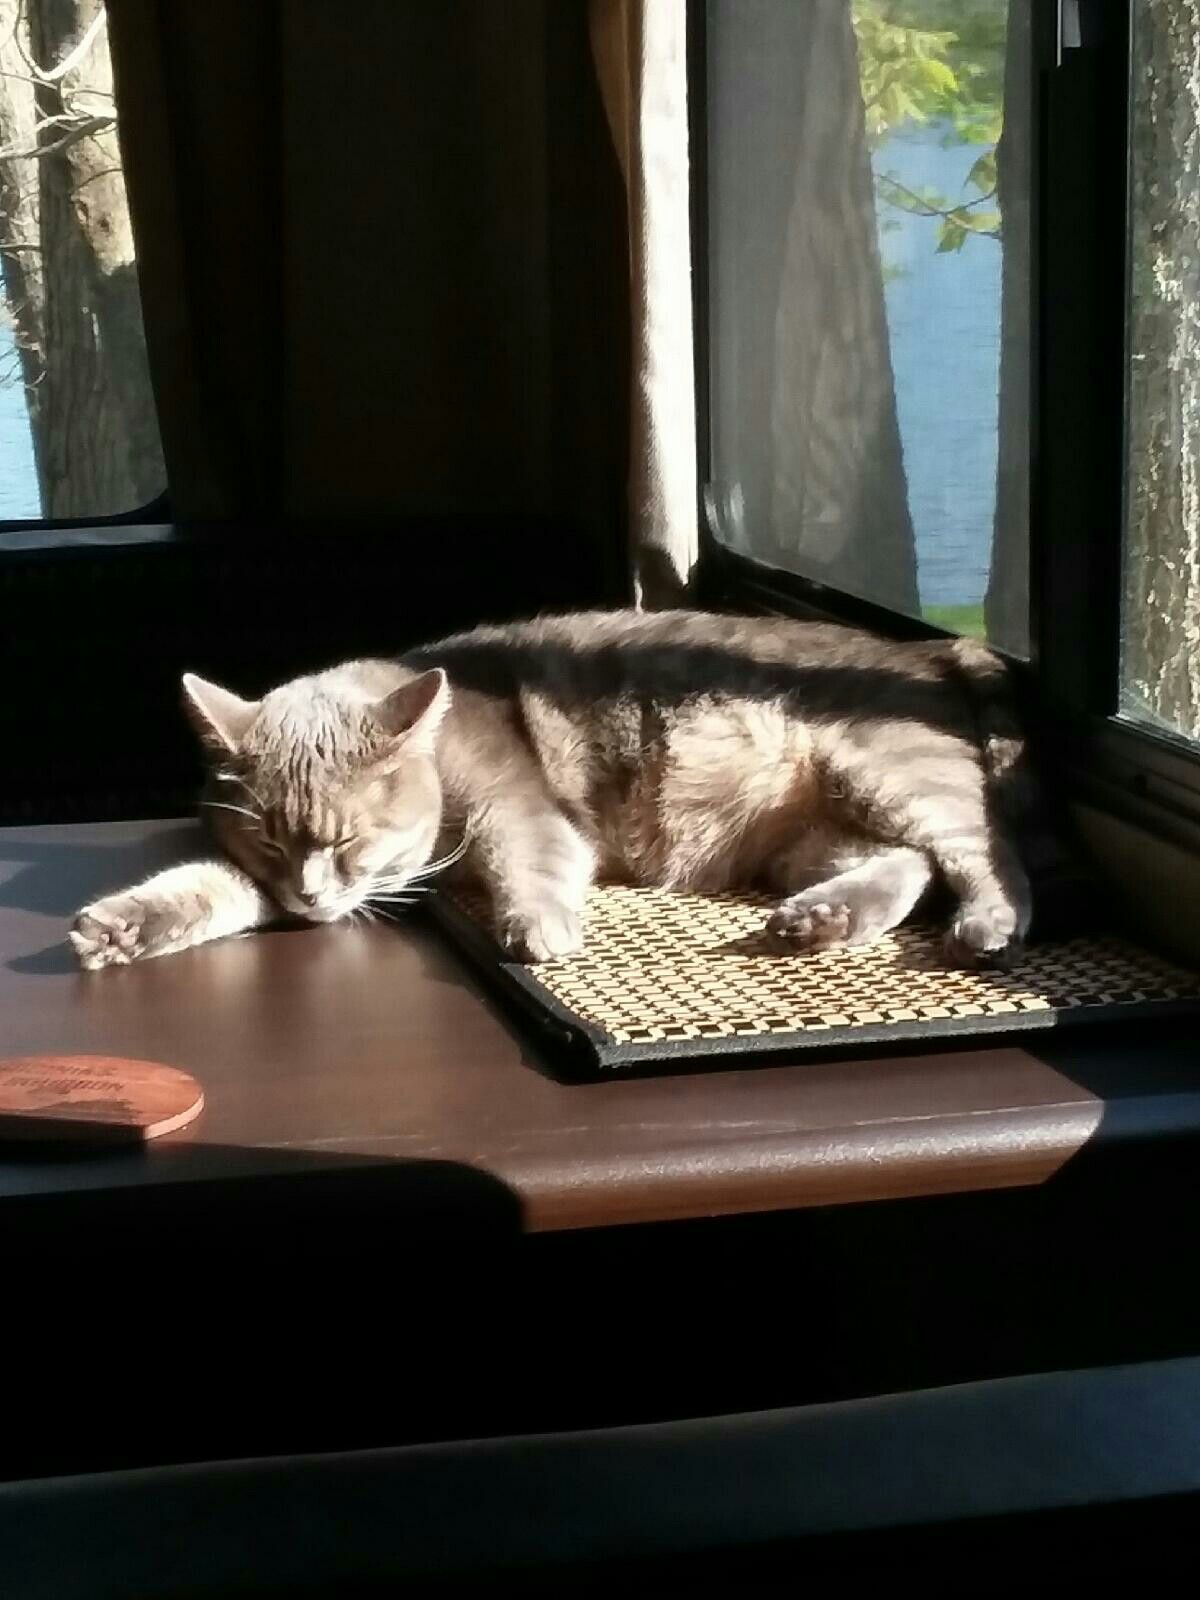 Pin by Lance Cardaro on Our Camper Kitty Kitty, Cats